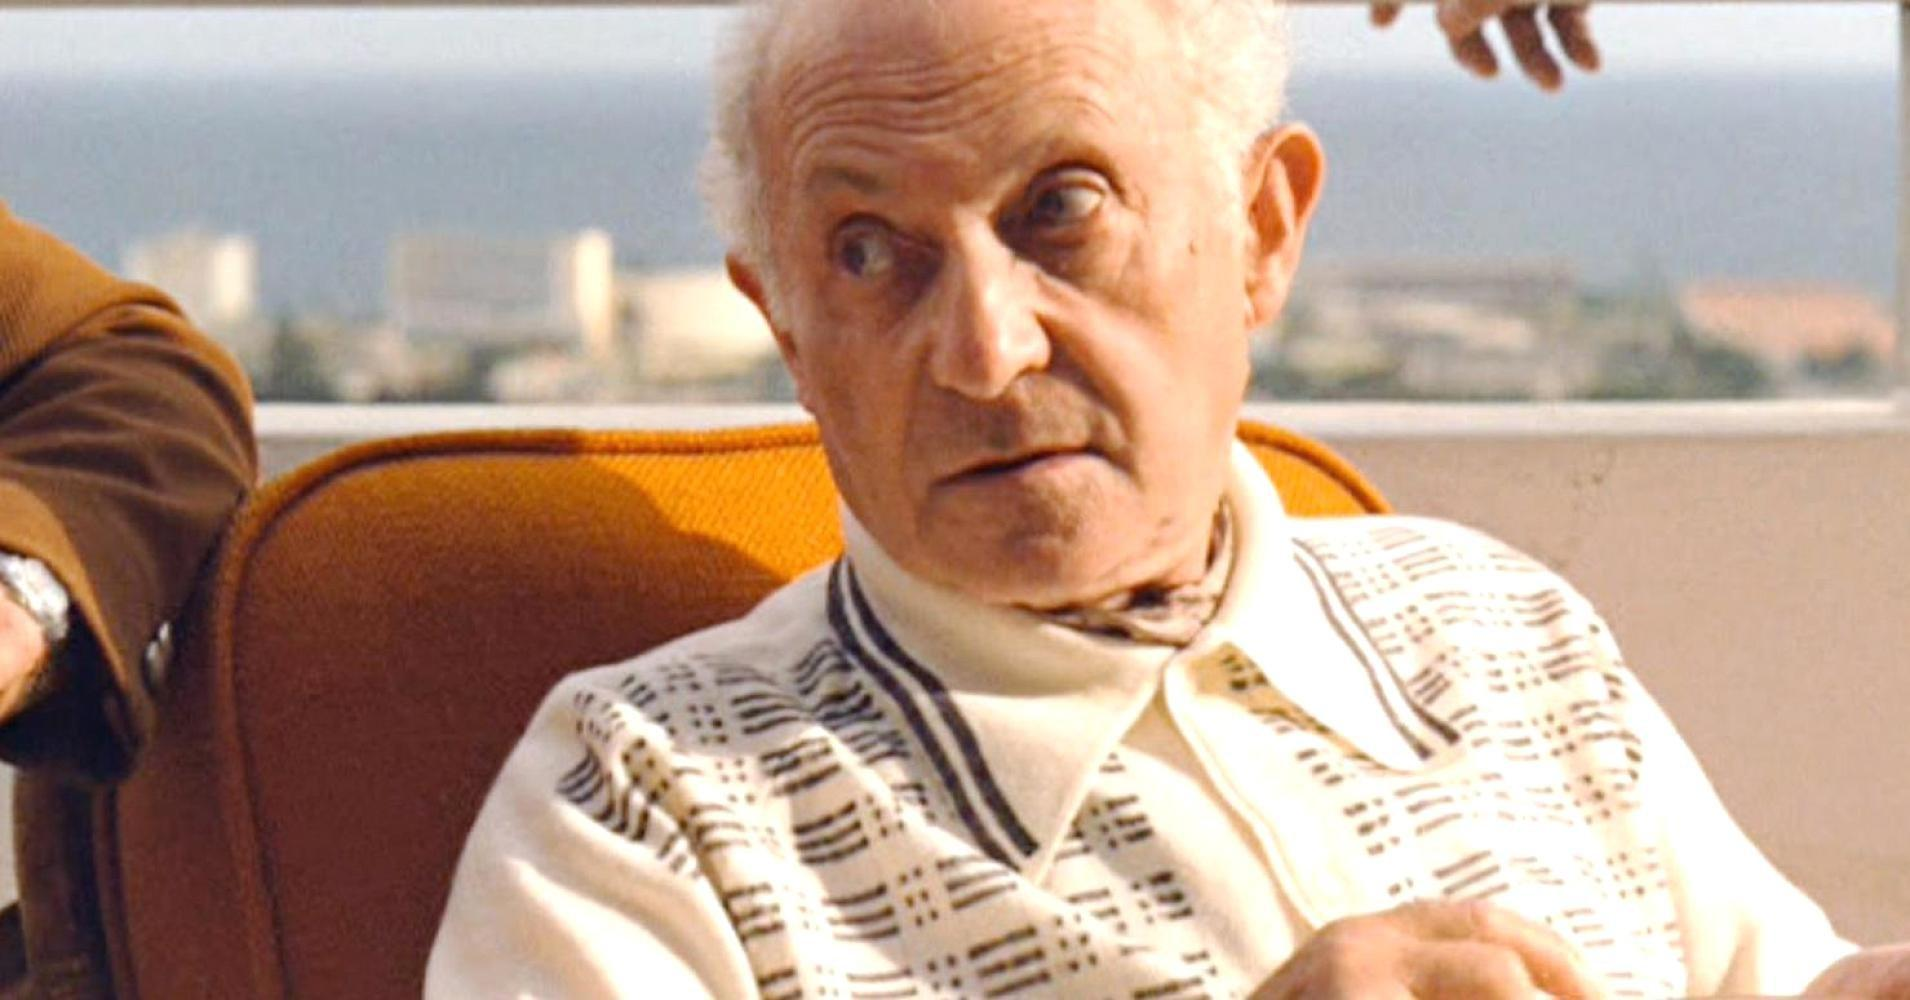 The 'Hyman Roth' play: Cuba-related stocks rally